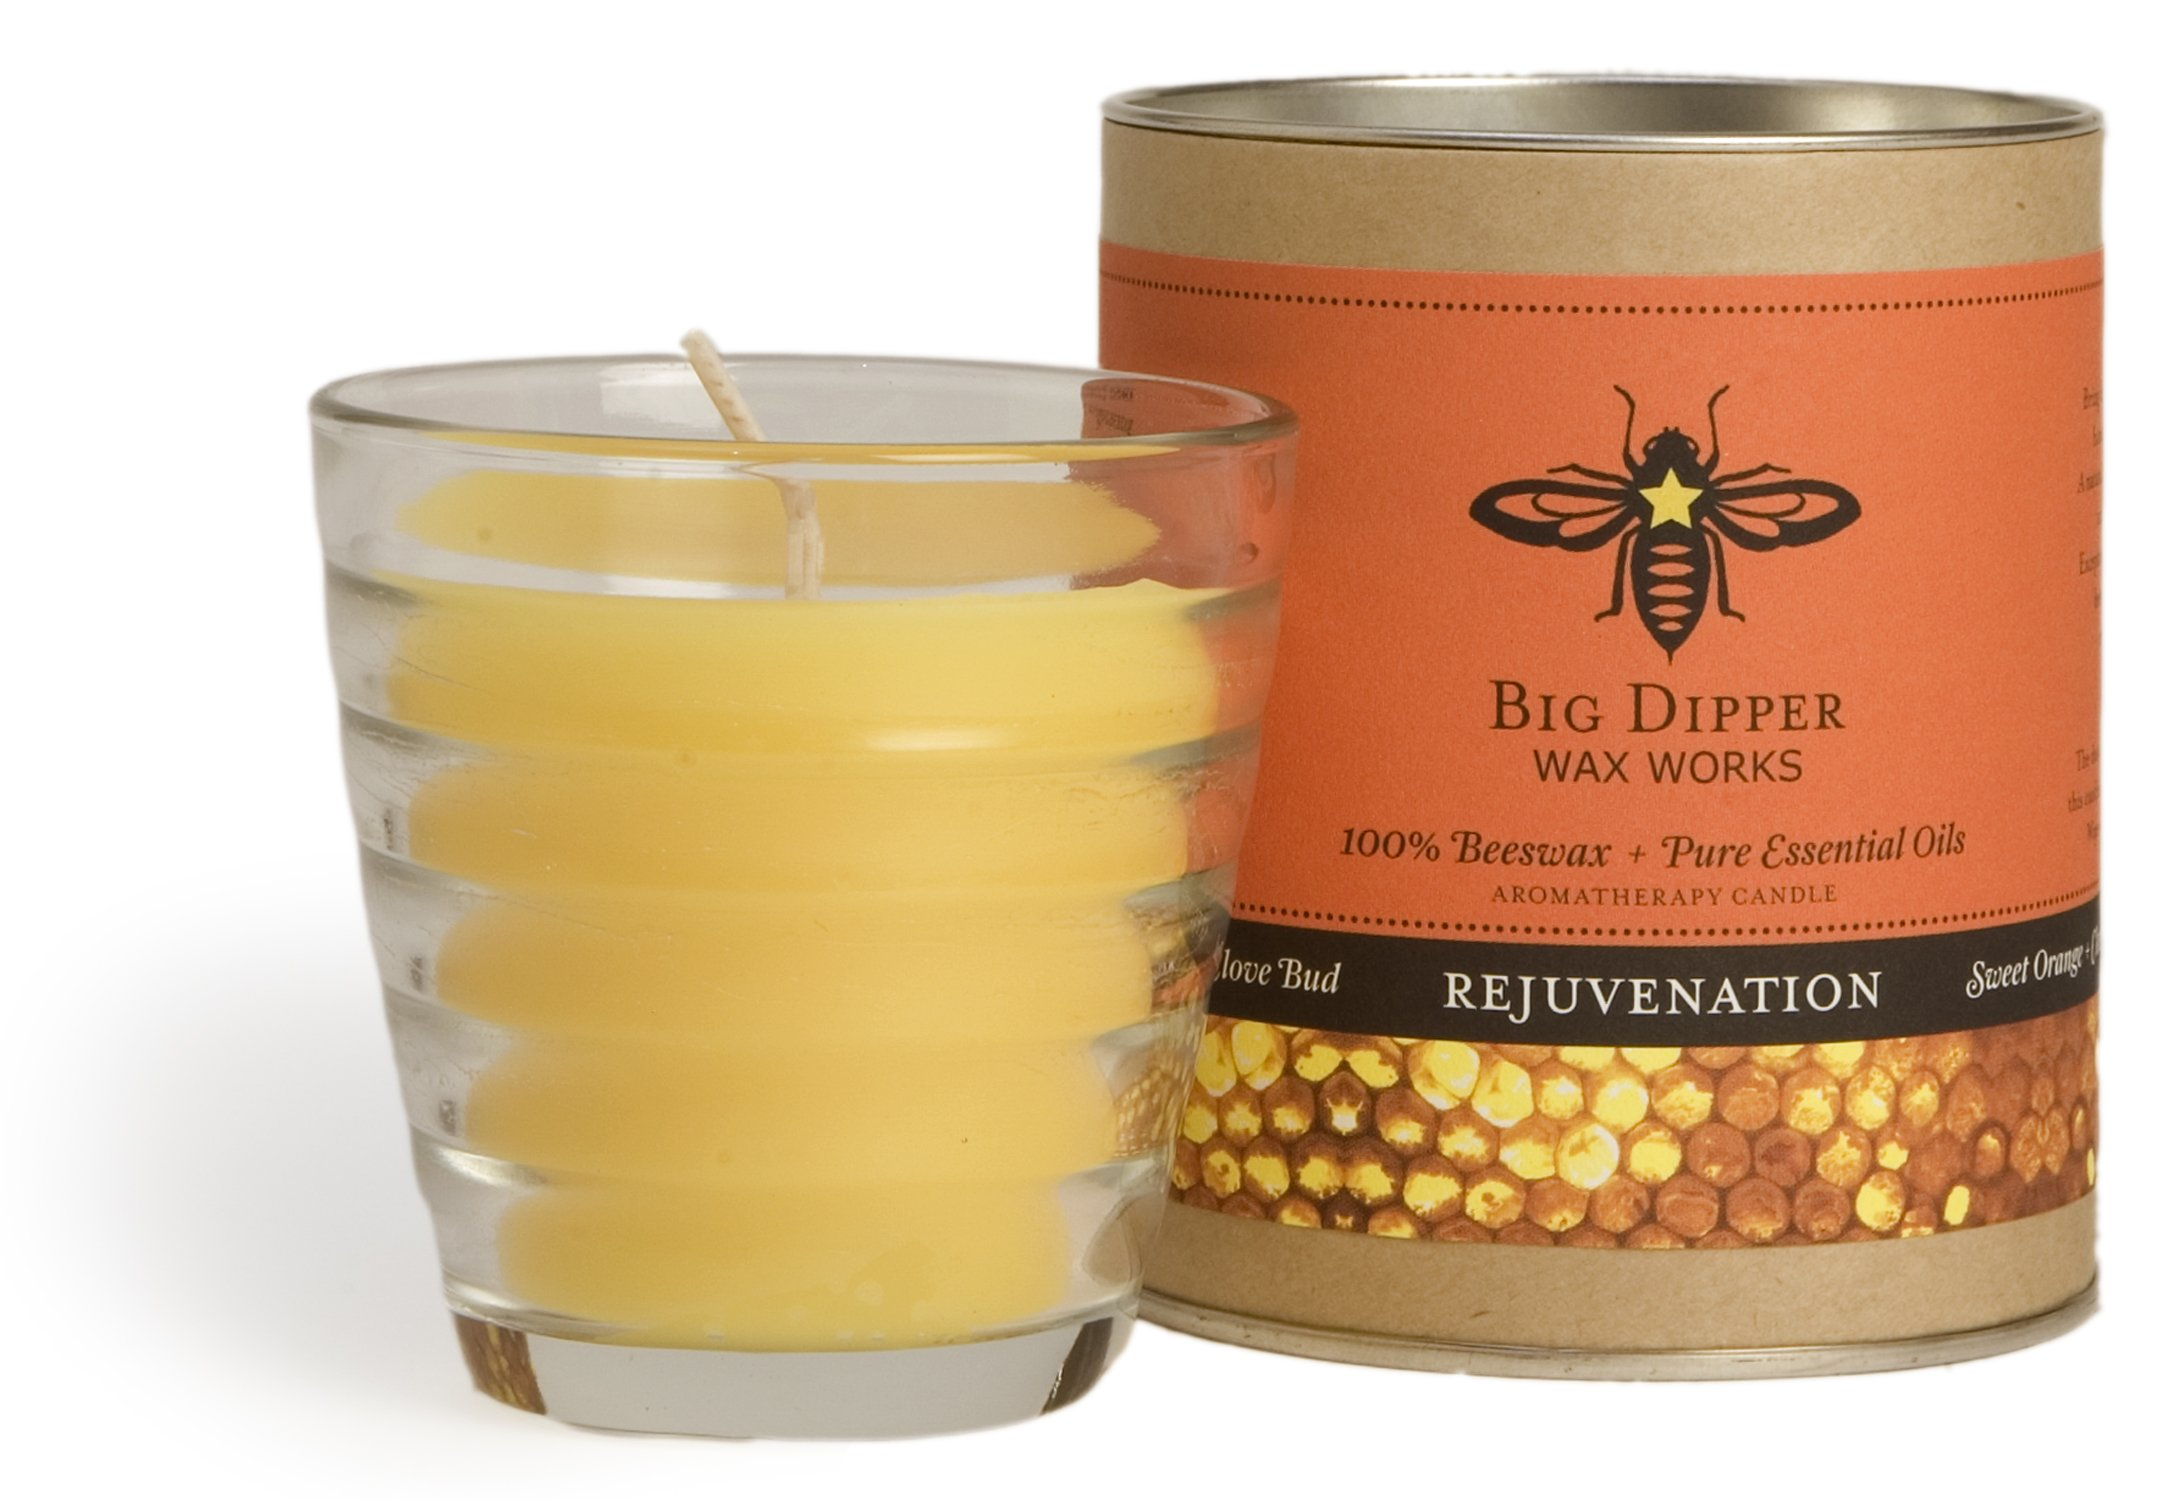 Long-lasting Hand-cast 100% Pure Beeswax Candle, 6 oz. Aromatherapy Beehive Glass - Rejuvenation (Sweet Orange-Clove Bud)